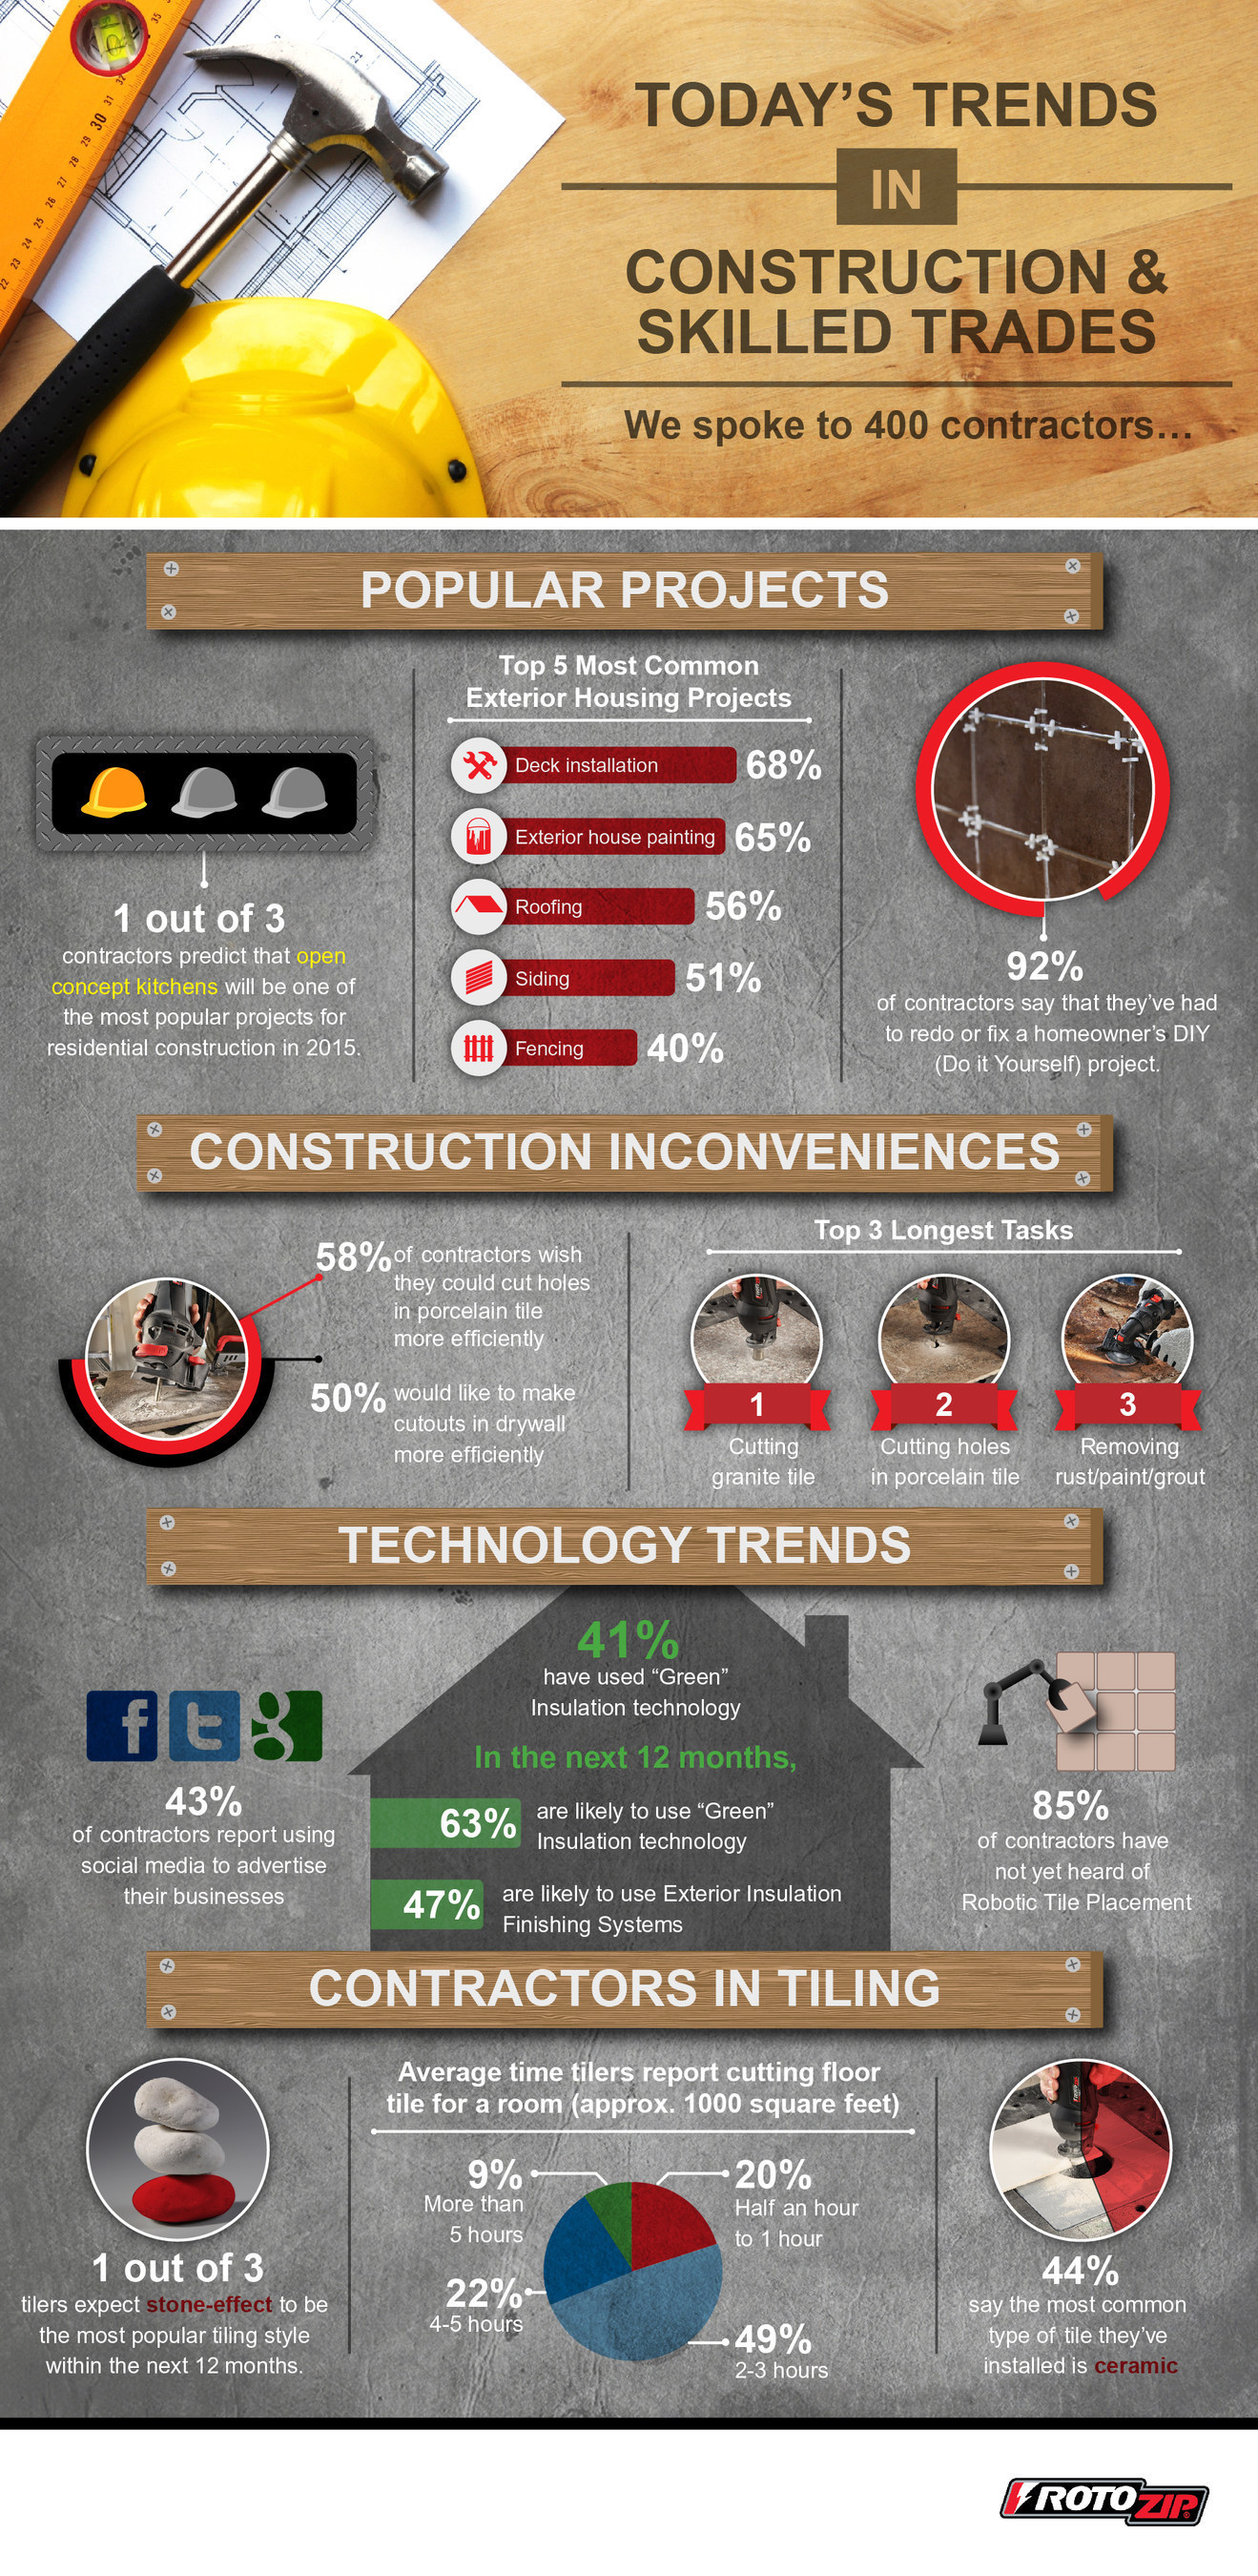 Survey reveals contractors look to be more efficient when cutting survey of contractors reveals that they look to be more efficient when cutting drywall and tile dailygadgetfo Choice Image